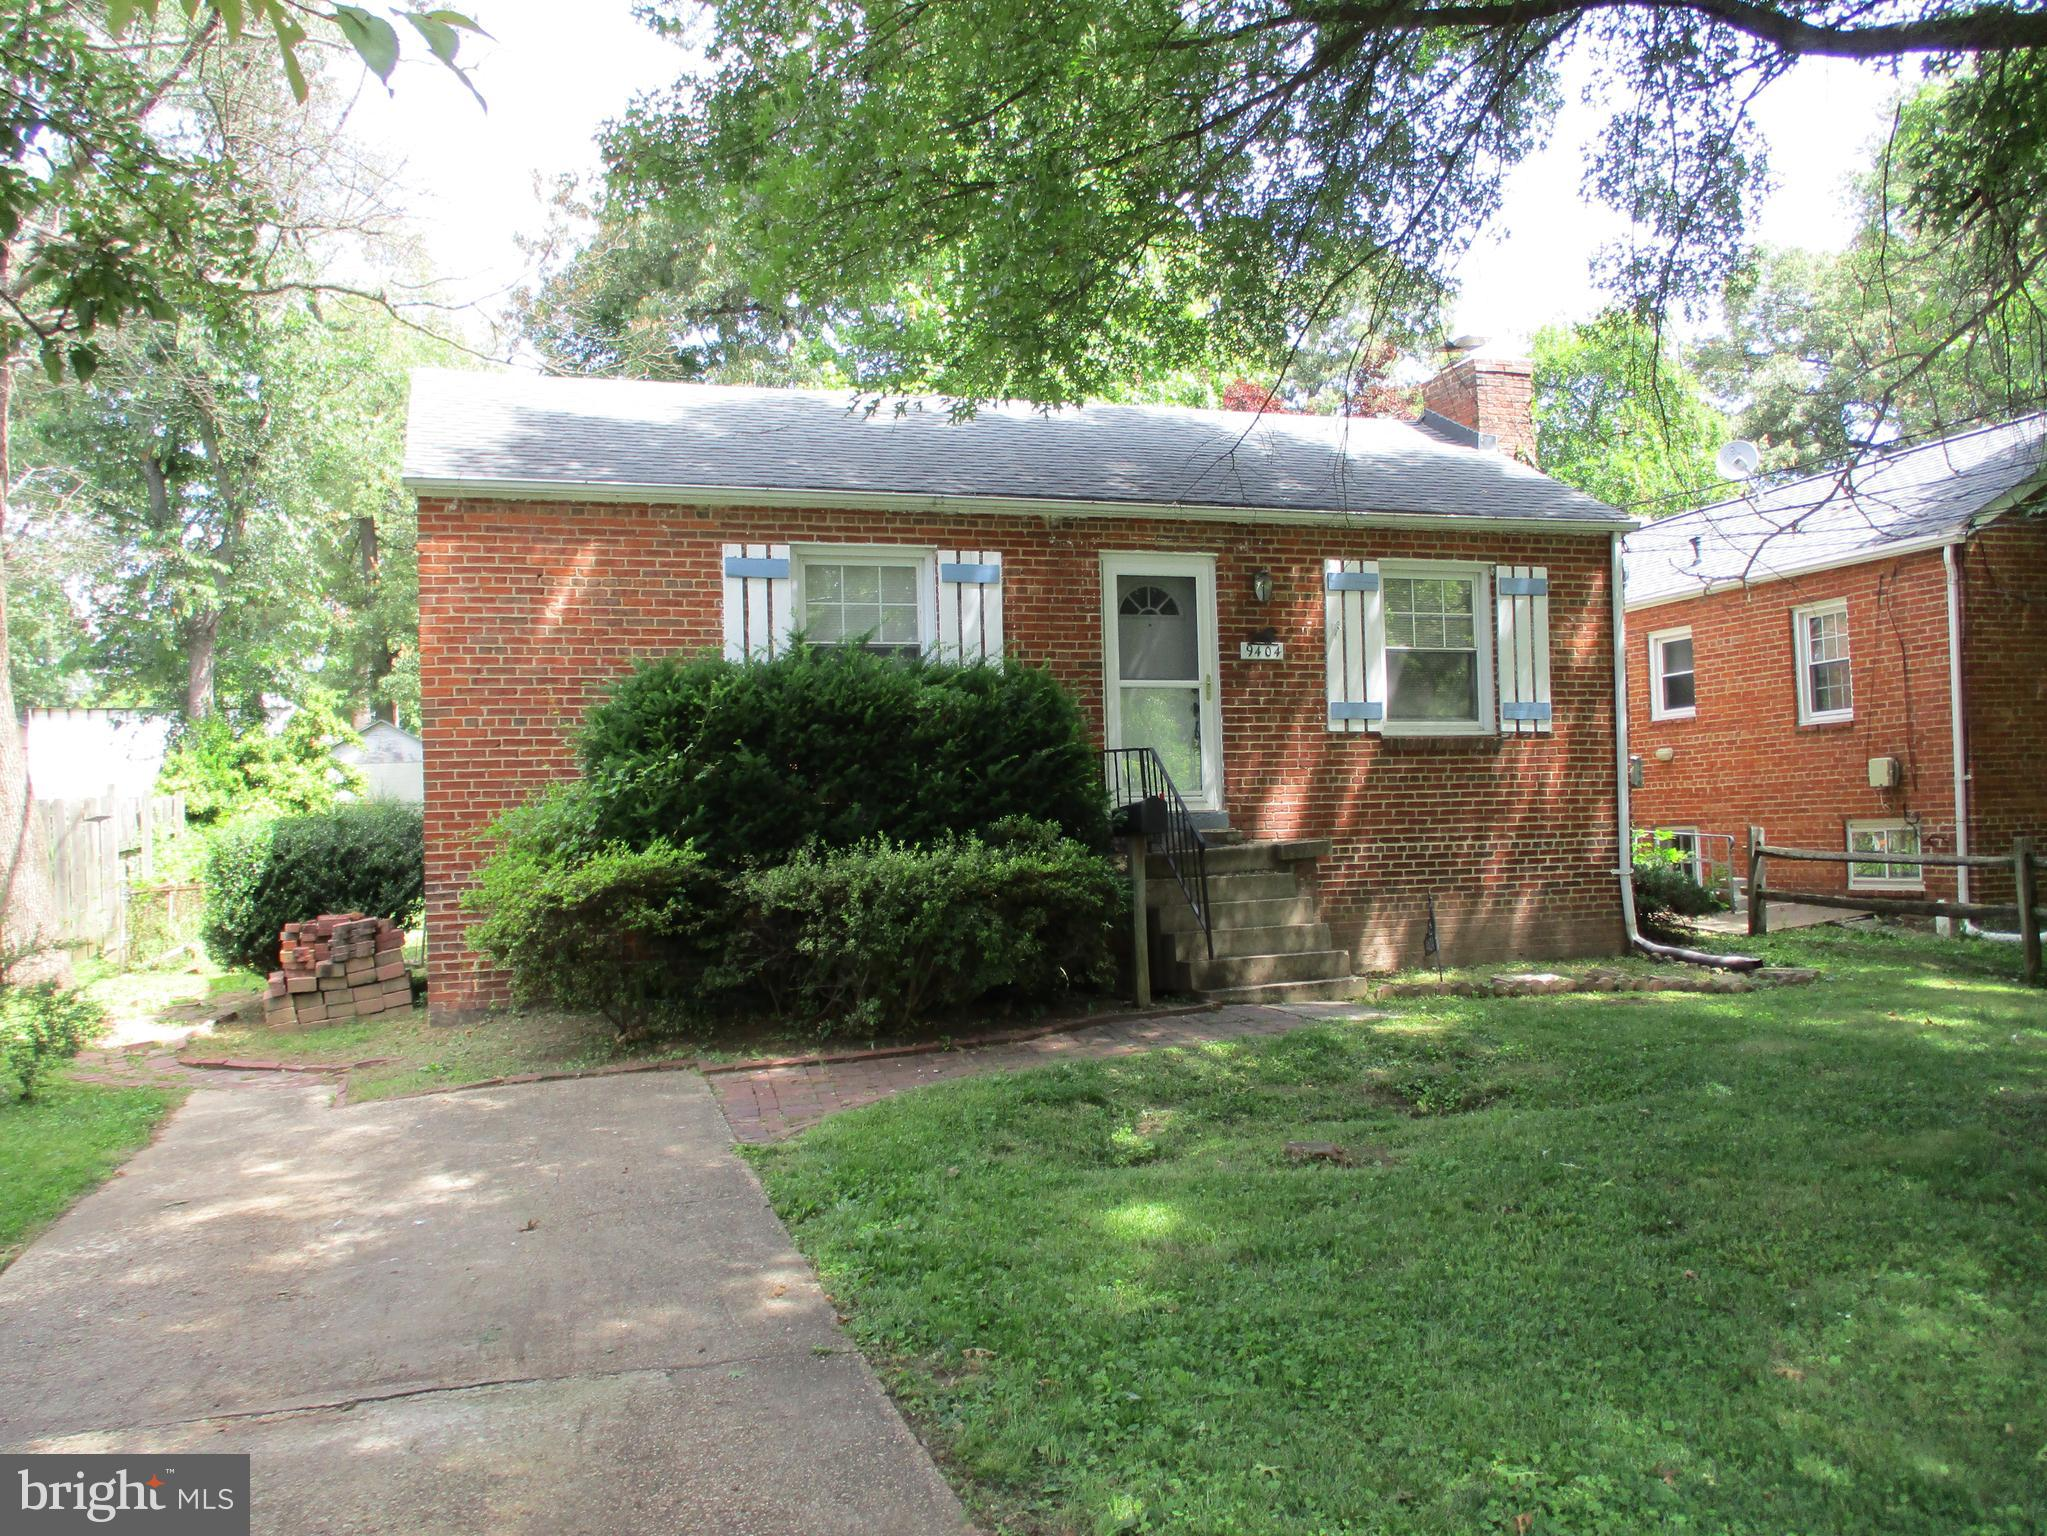 VERY NICE  STARTER HOME-GOOD BONES &  A GREAT  PROPERTY FOR FHA  STREAMLINE 203K  FINANCING!!  NICE LEVEL-FENCED YARD-PLENTY OF OFF STREET PARKING!!  CLOSE TO SHOPPING!!  VACANT-EASY TO SHOW & CAN SETTLE QUICK!!  BEING SOLD IN AS-IS CONDITION!